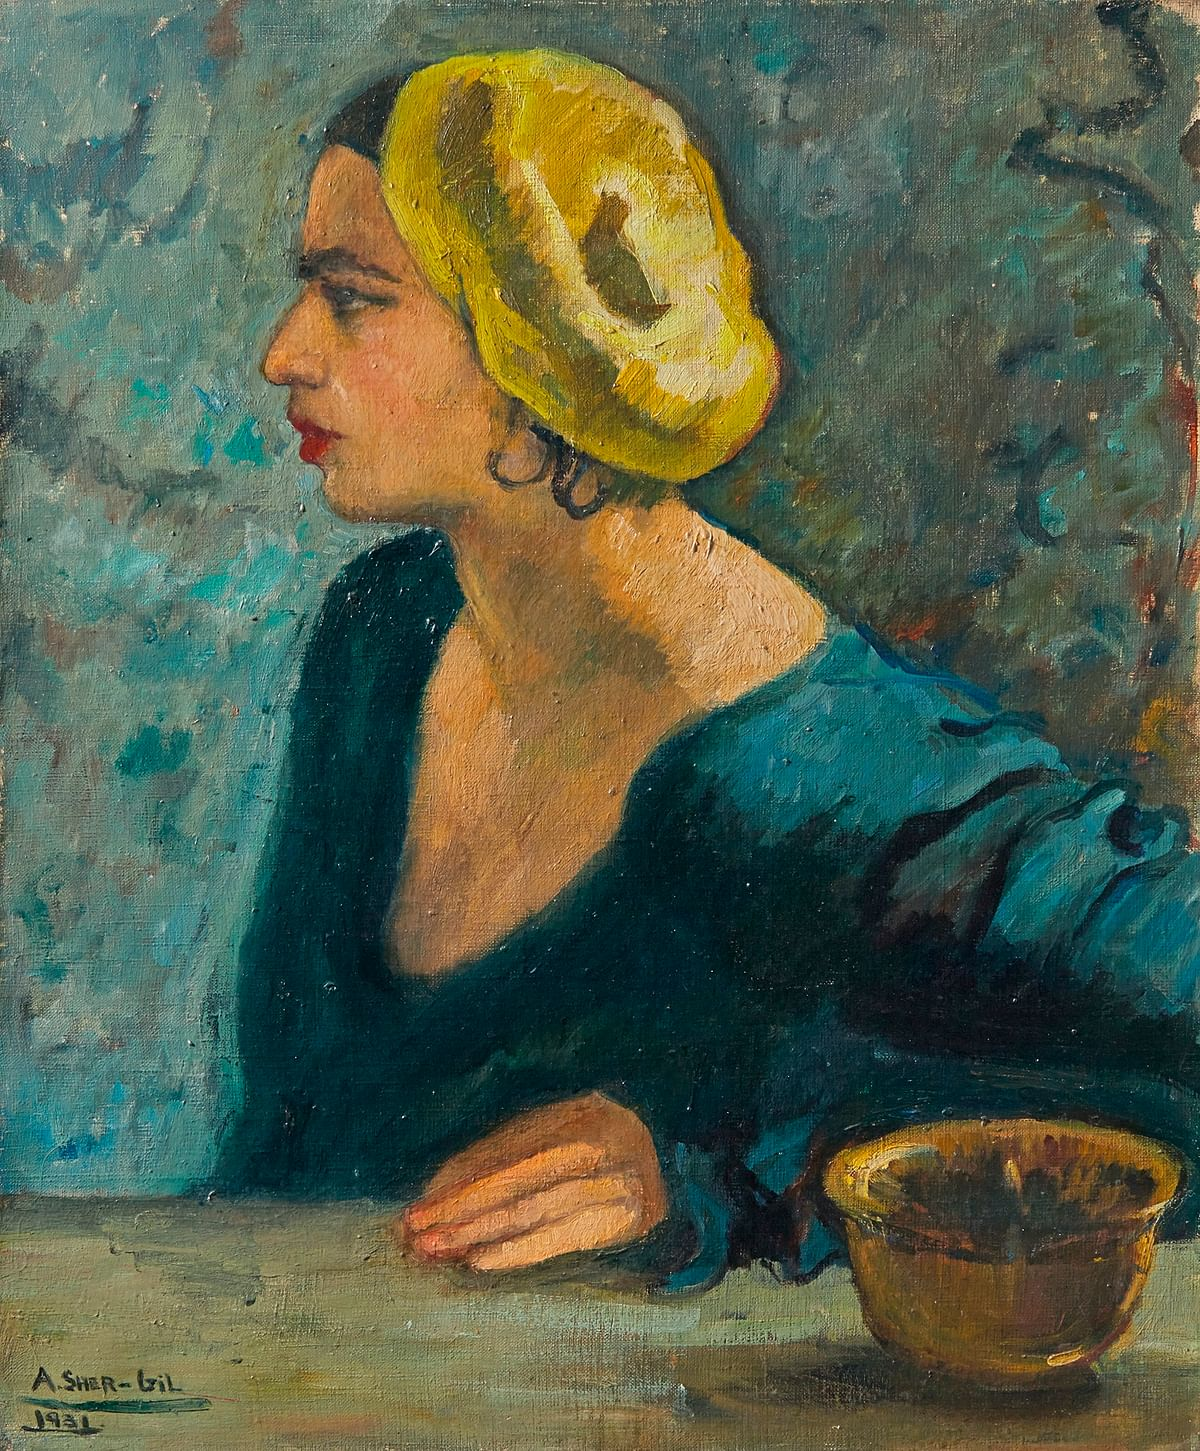 A self-portrait by Amrita Sher-Gil that sold for a record $2.92 million at Sotheby's in 2015. (Photo: Sahar Zaman)